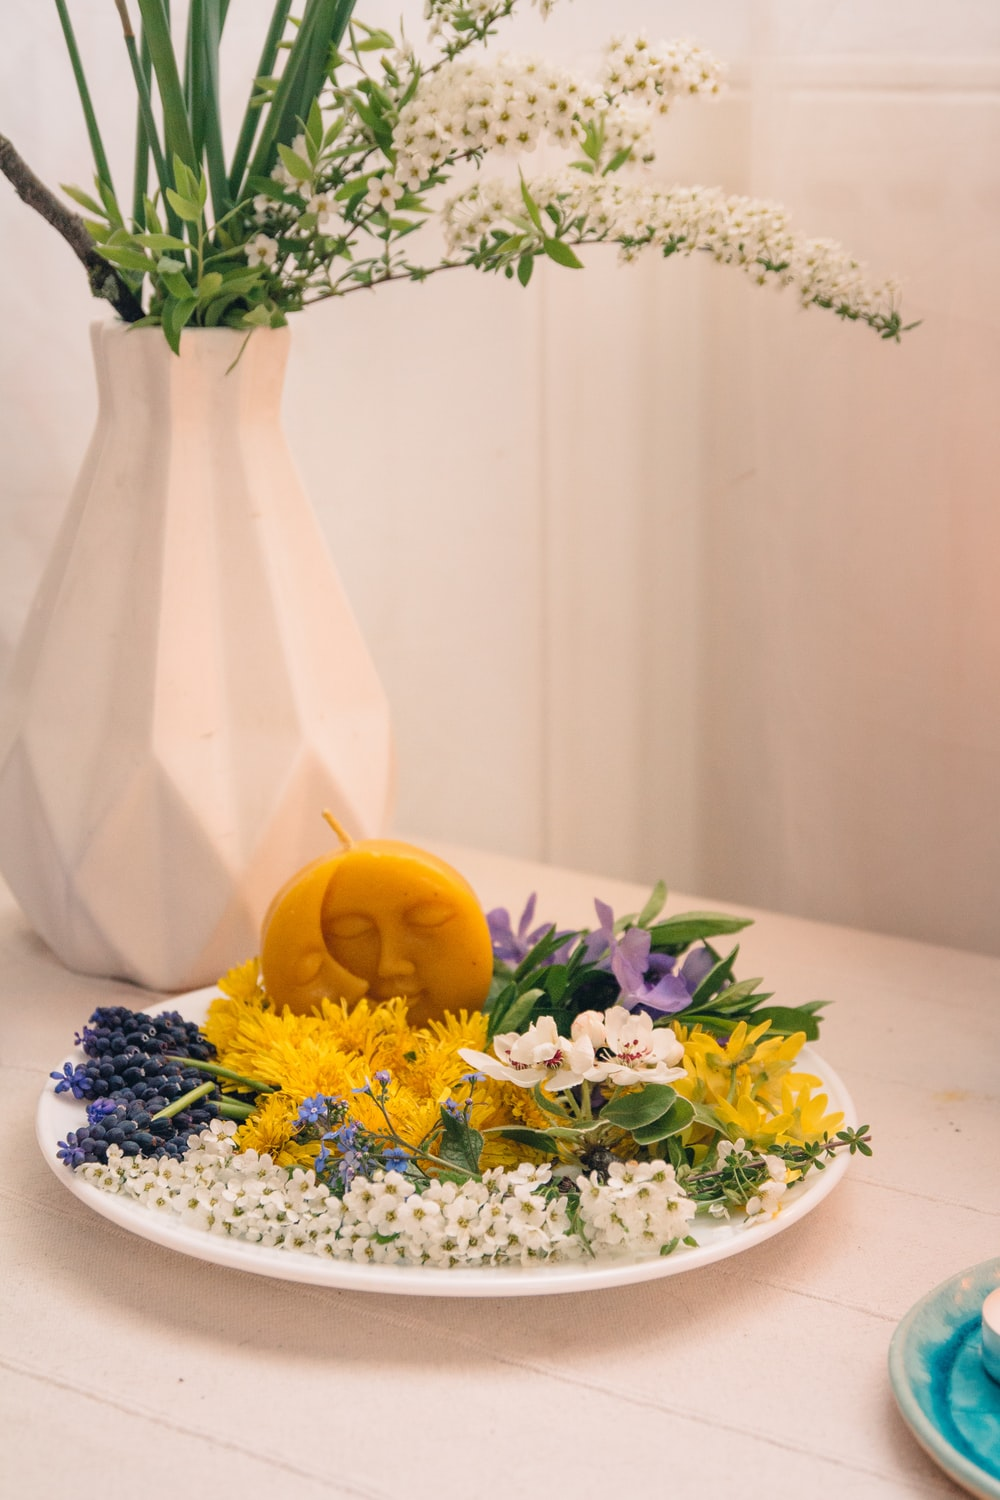 yellow and white flowers in white ceramic vase